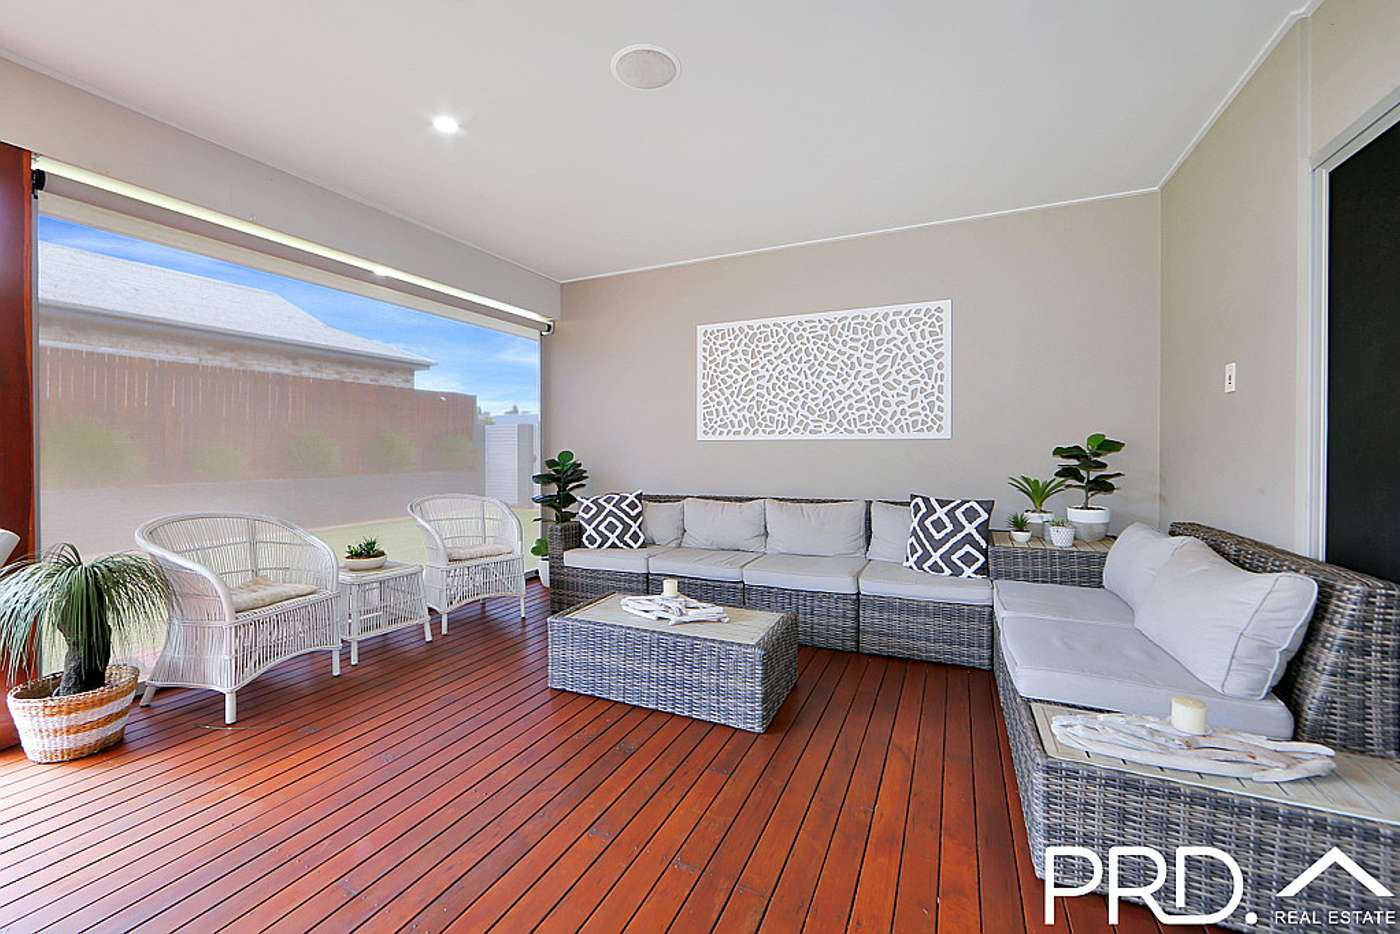 Sixth view of Homely house listing, 3 Jasmine Court, Kalkie QLD 4670